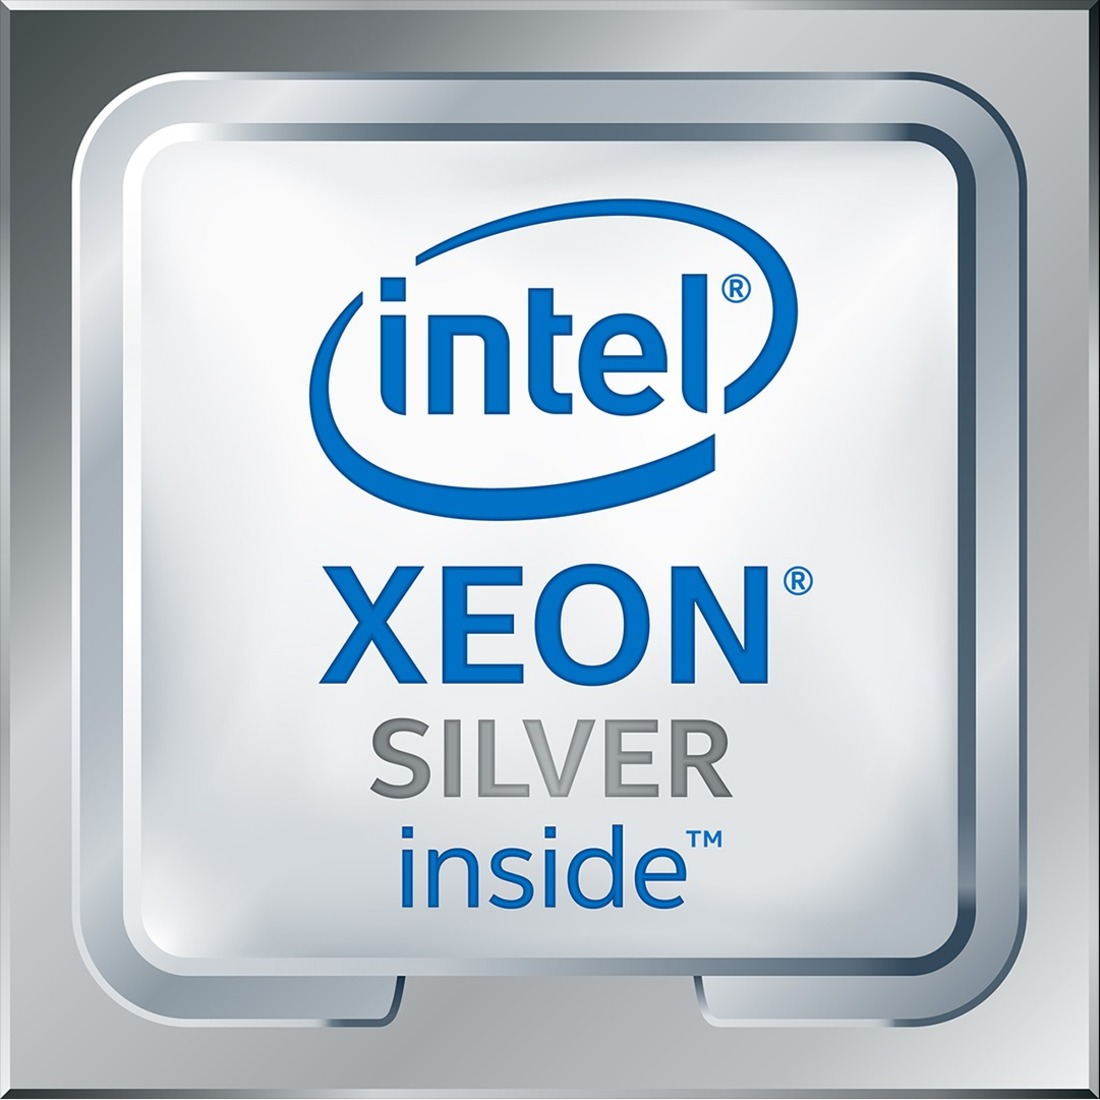 HPE DL380 Gen10 Intel Xeon-Silver 4210 (2.2GHz/10-core/85W) Processor Kit P02492-B21